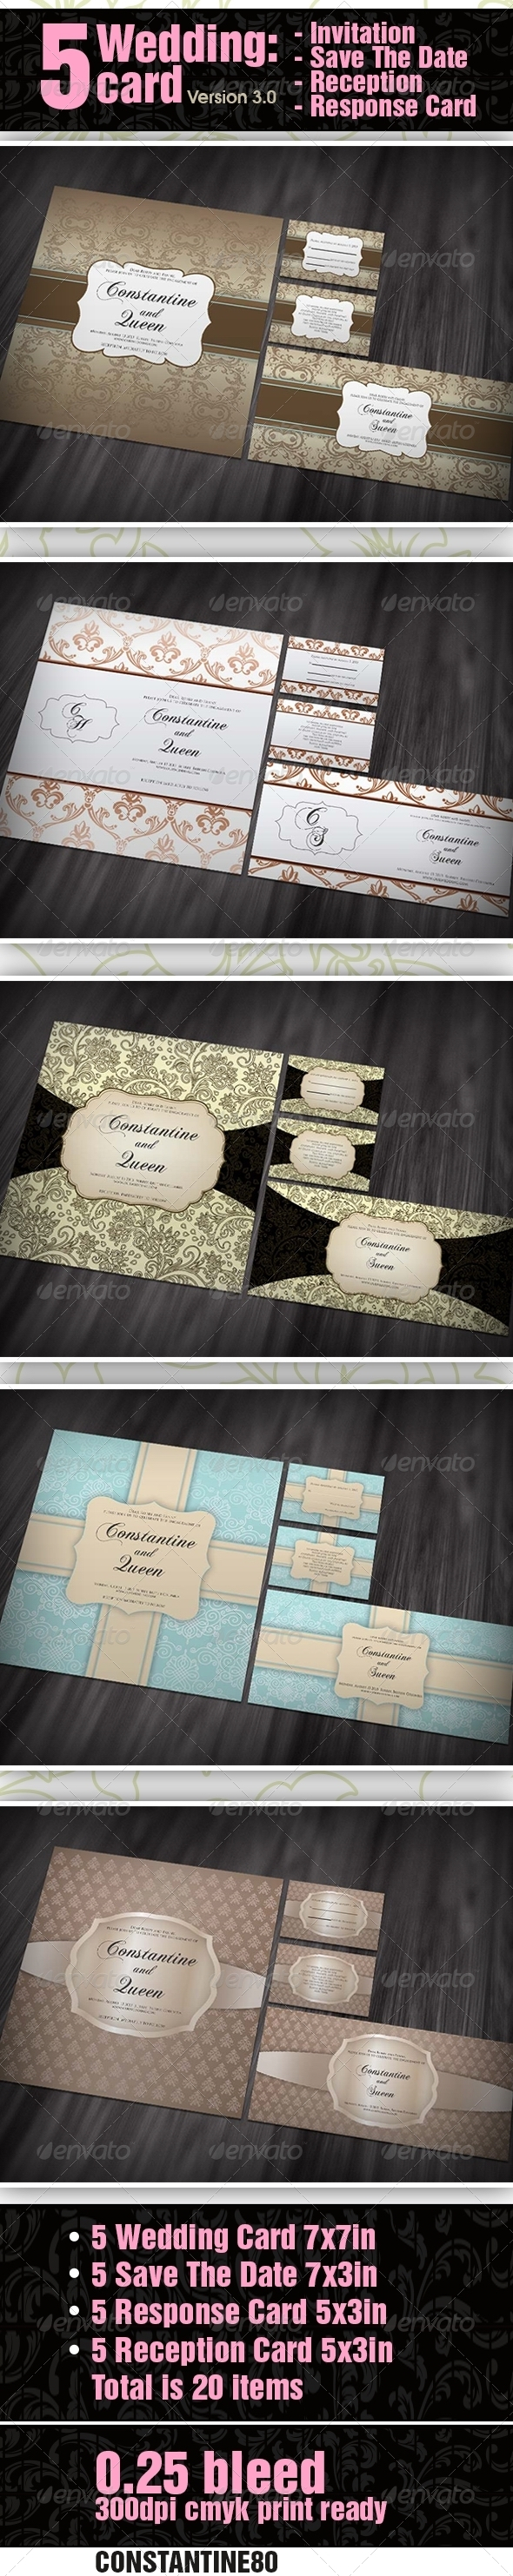 5 items Wedding card ver 3.0 - Weddings Cards & Invites